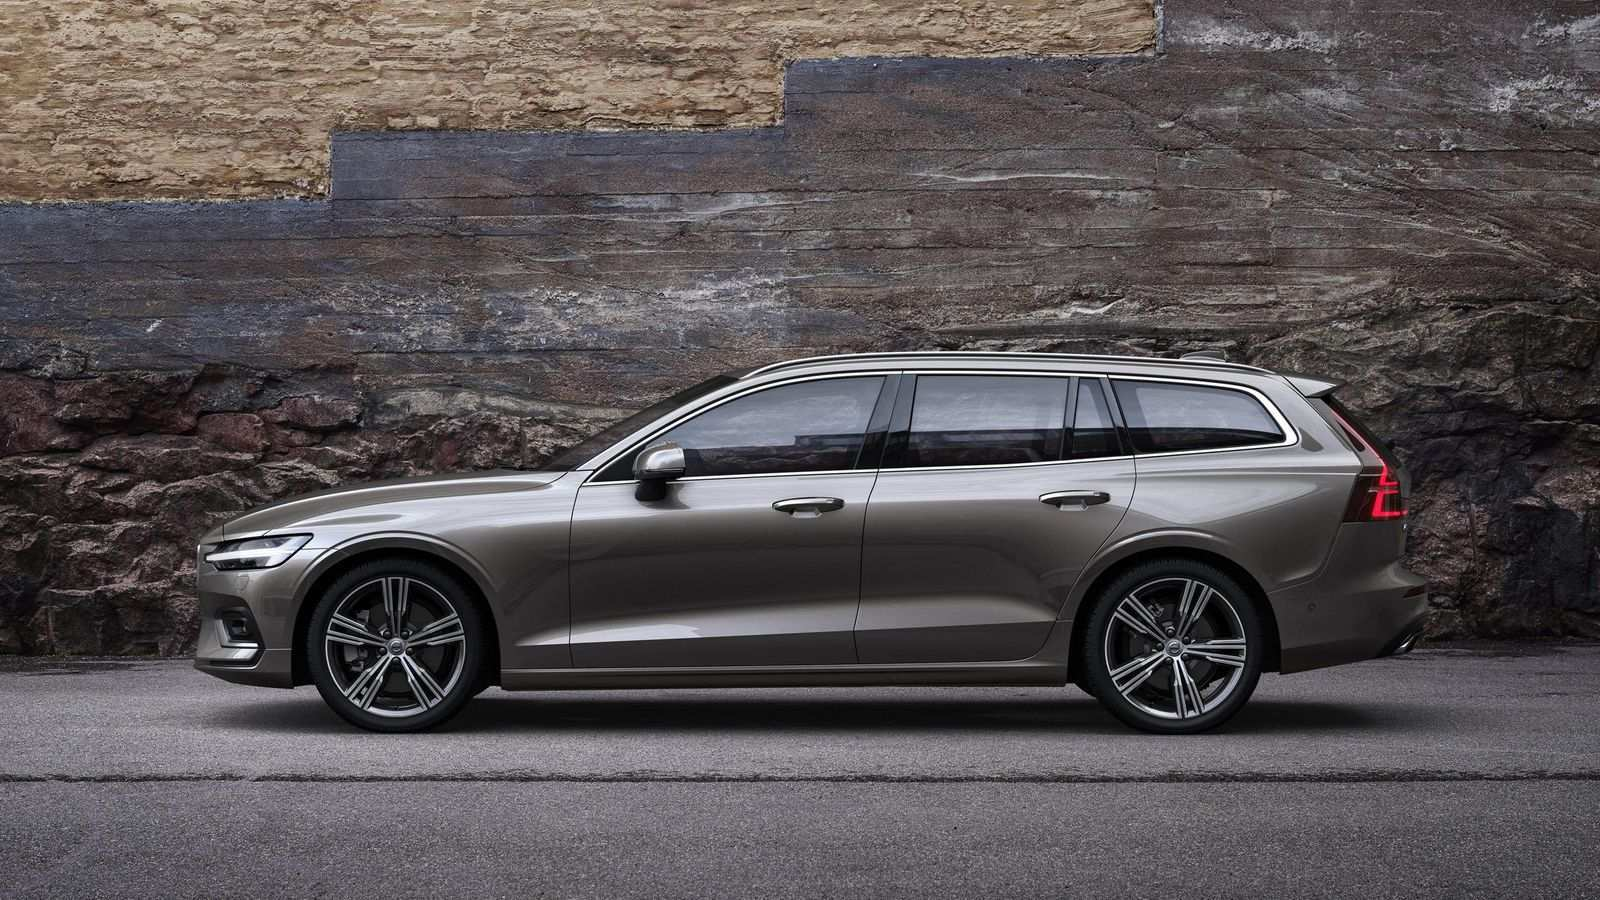 14 Concept of 2019 Volvo Wagon Model by 2019 Volvo Wagon